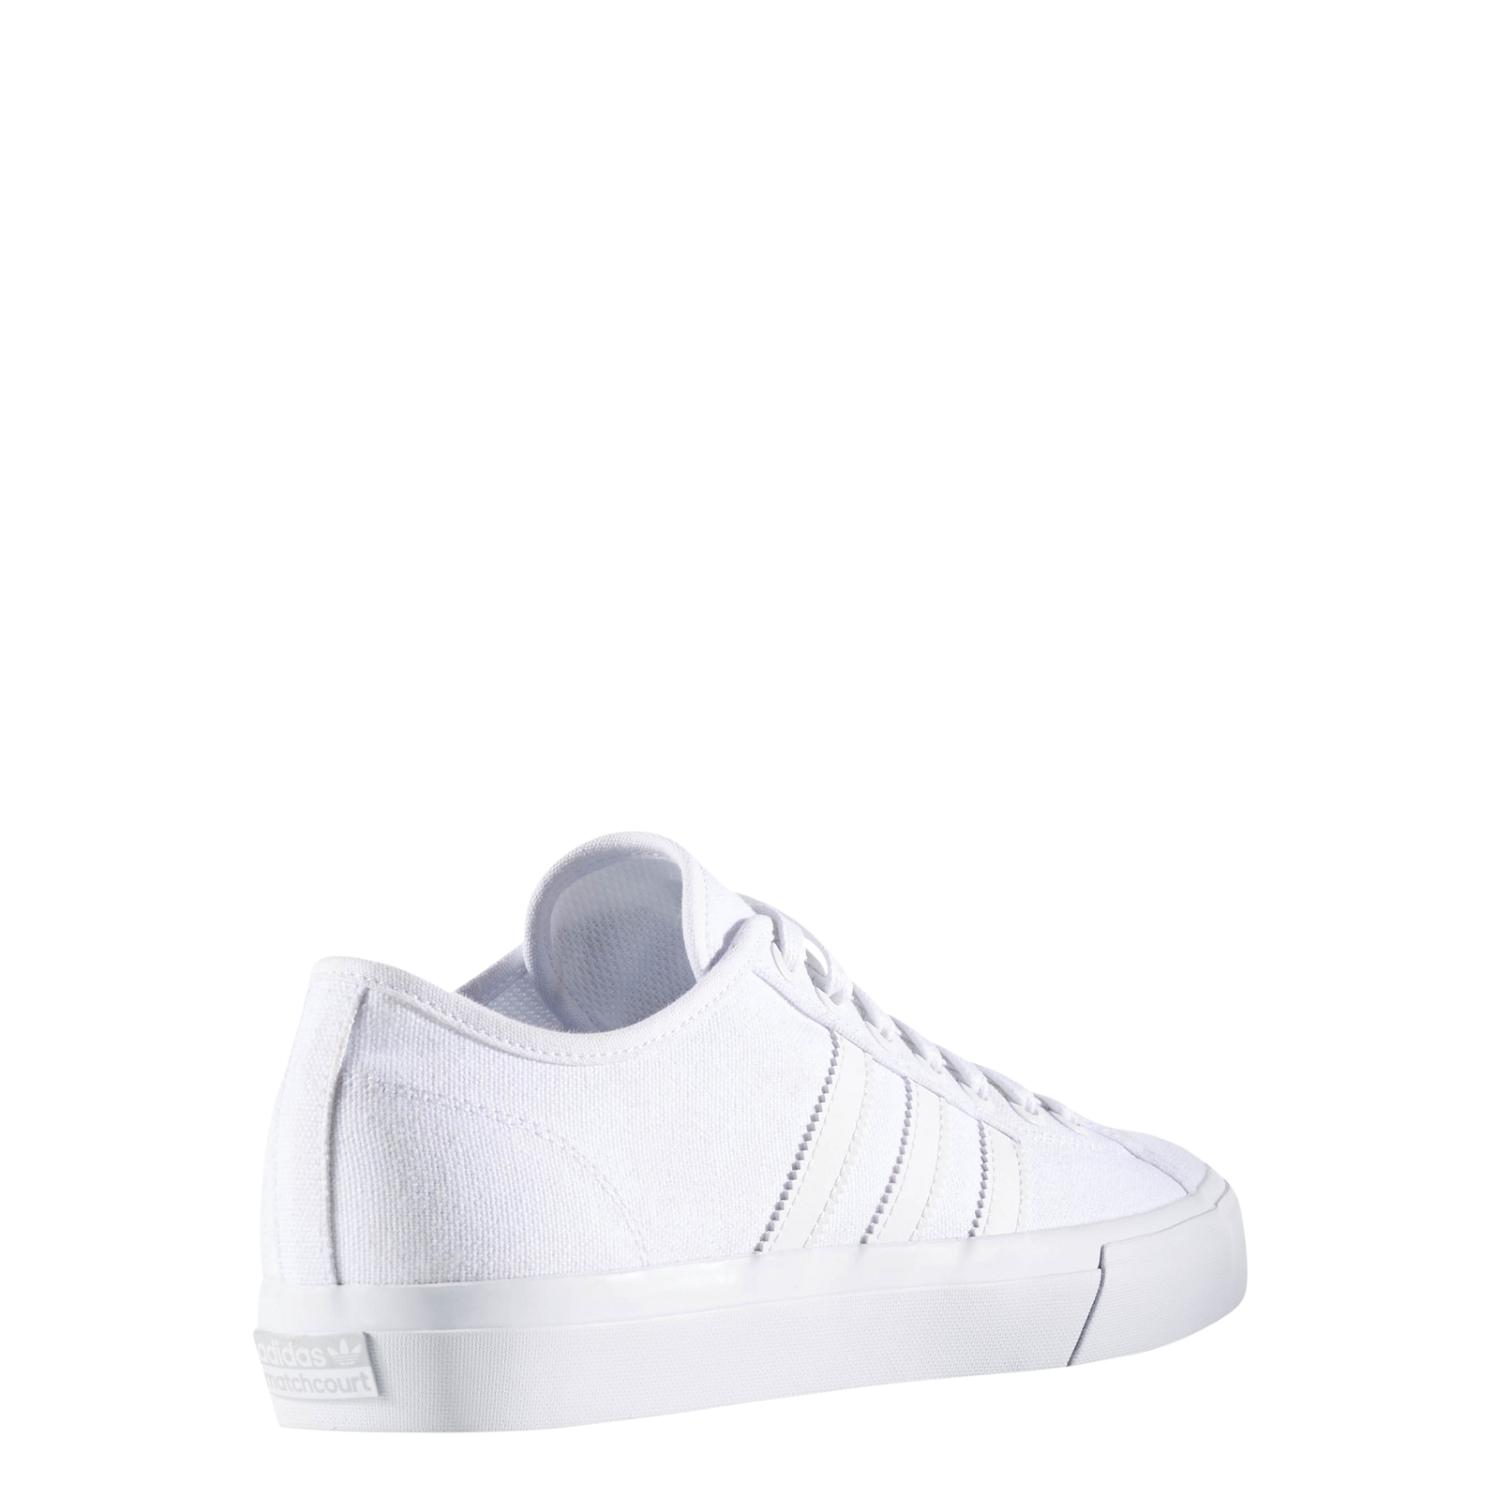 premium selection 834f4 eecfc Lyst - Adidas Matchcourt Remix Shoes in White for Men